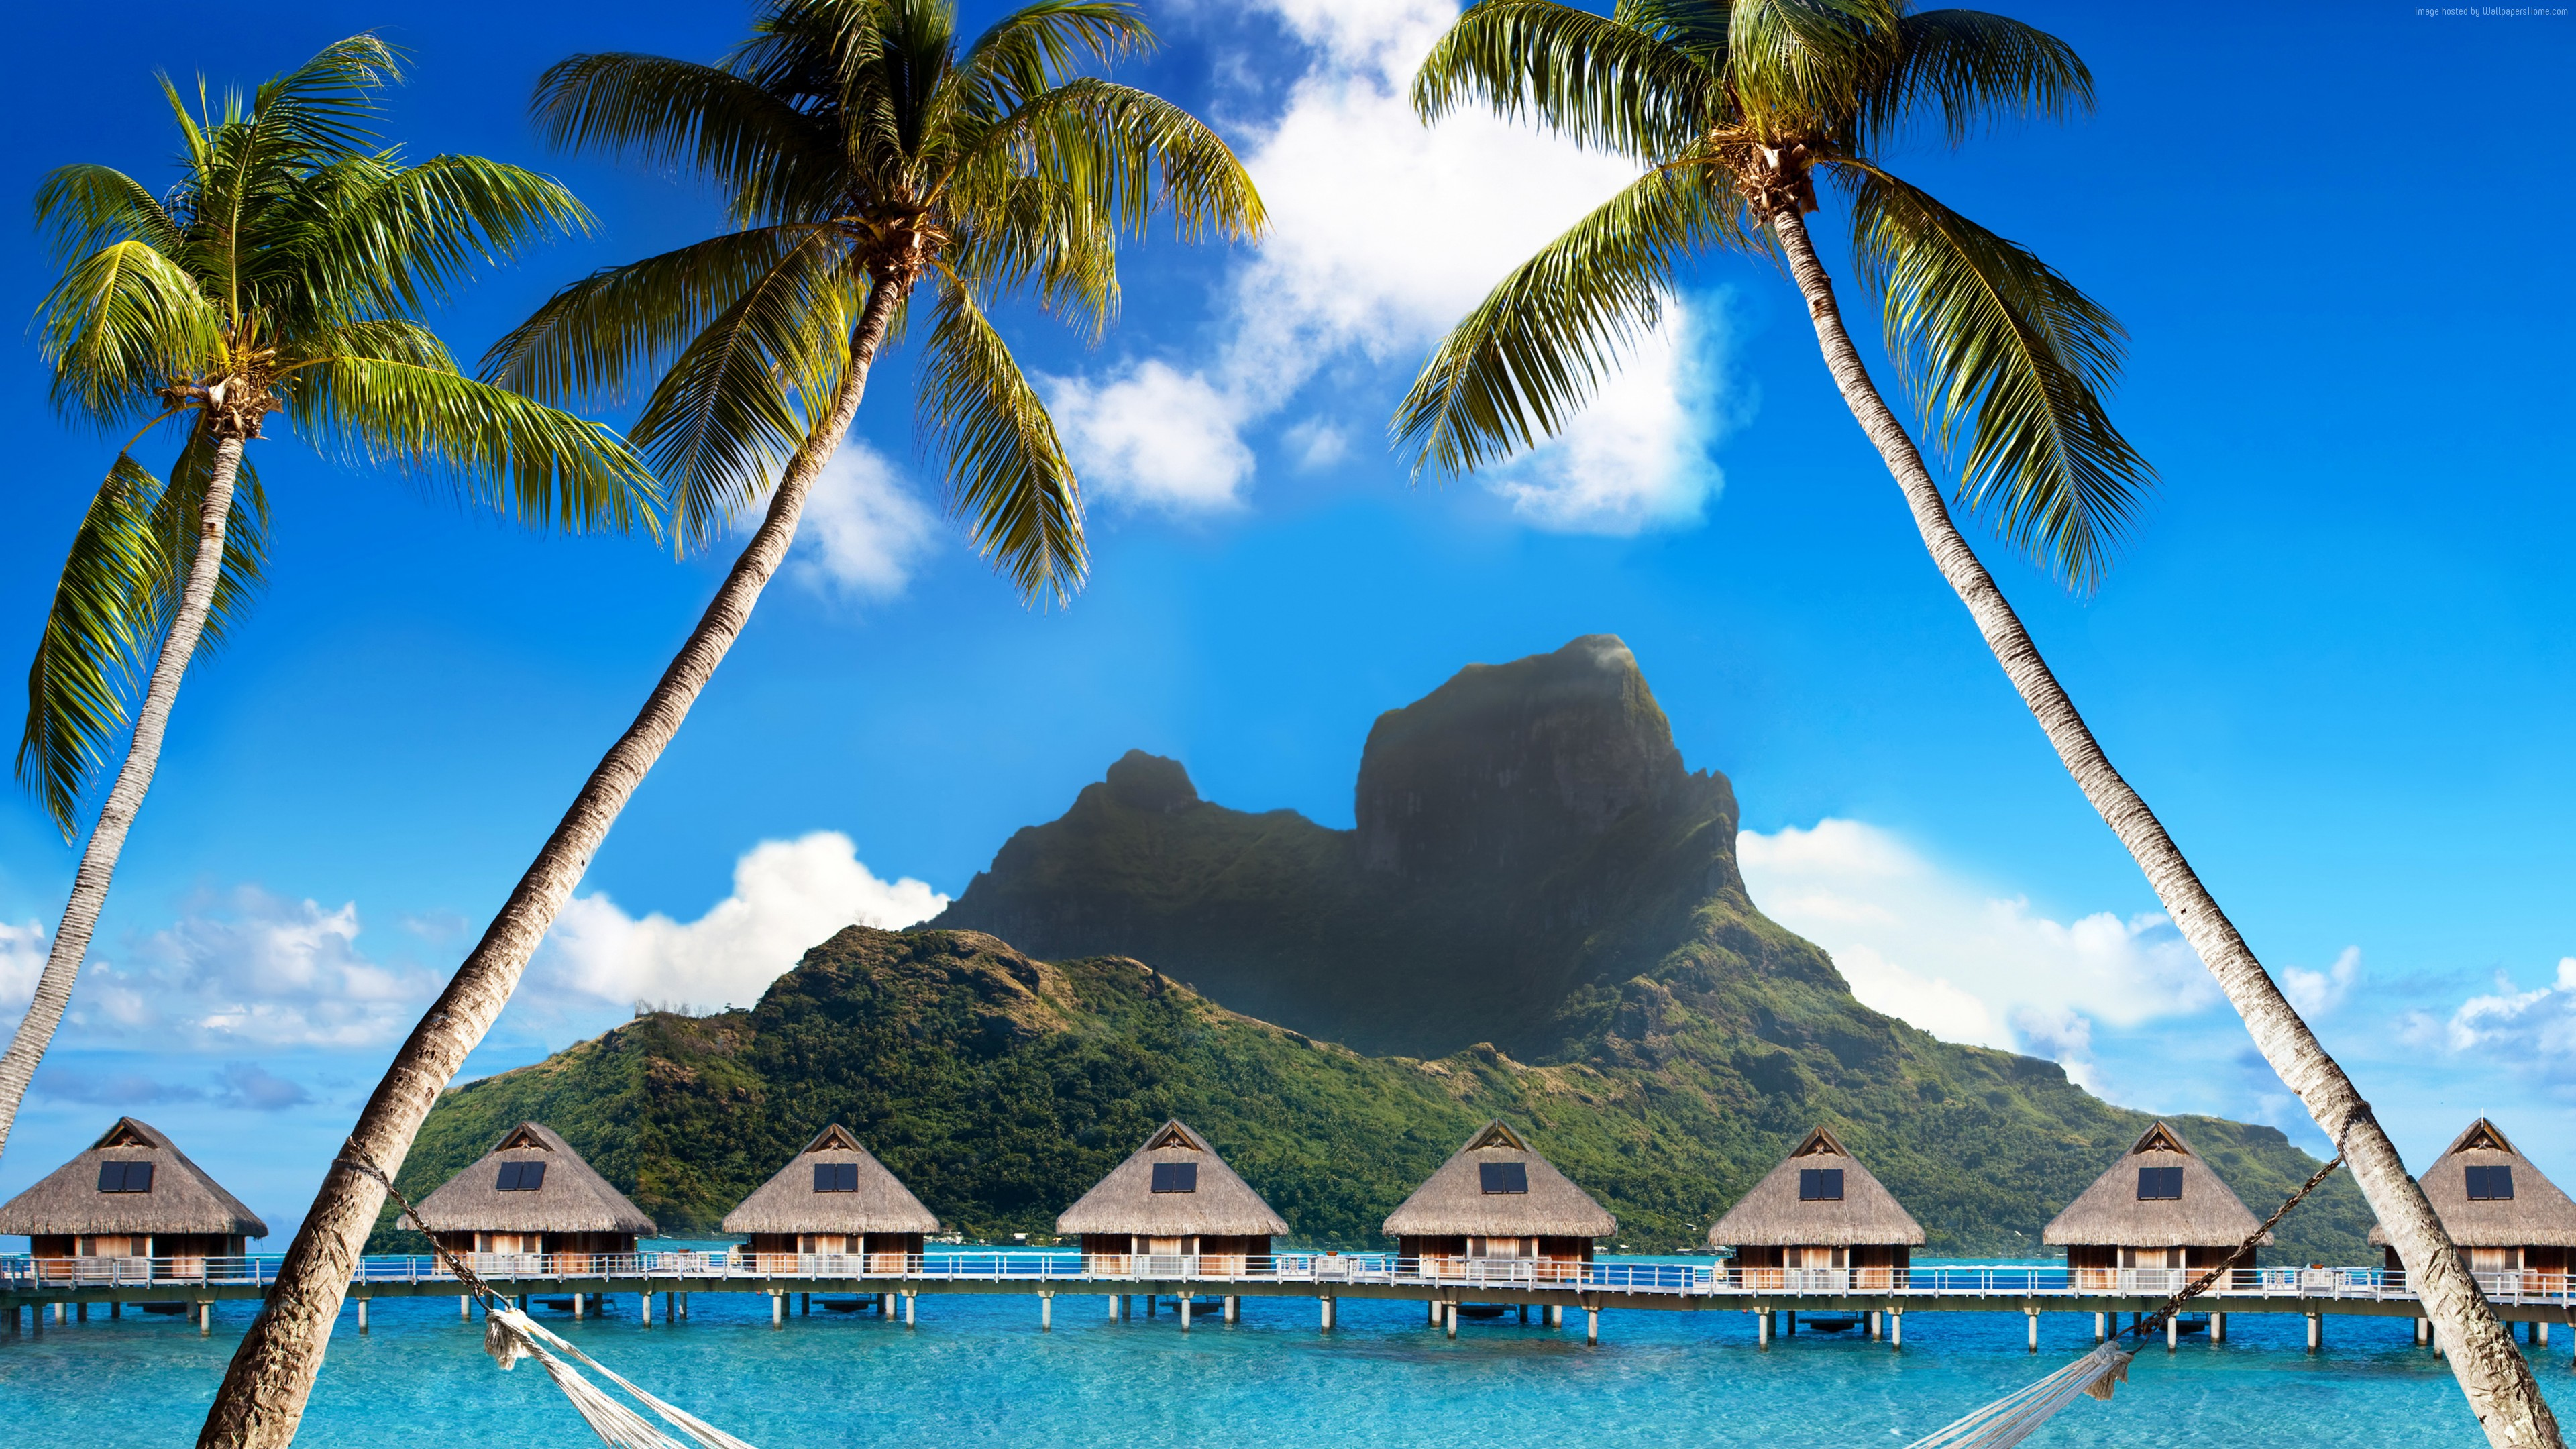 Wallpaper Bora Bora, 5k, 4k wallpaper, French Polynesia, Best beaches of 2017, Best Hotels of 2017, ocean, palm trees, mountains, beach, vacation, rest, travel, booking, palm trees, hammock, Travel